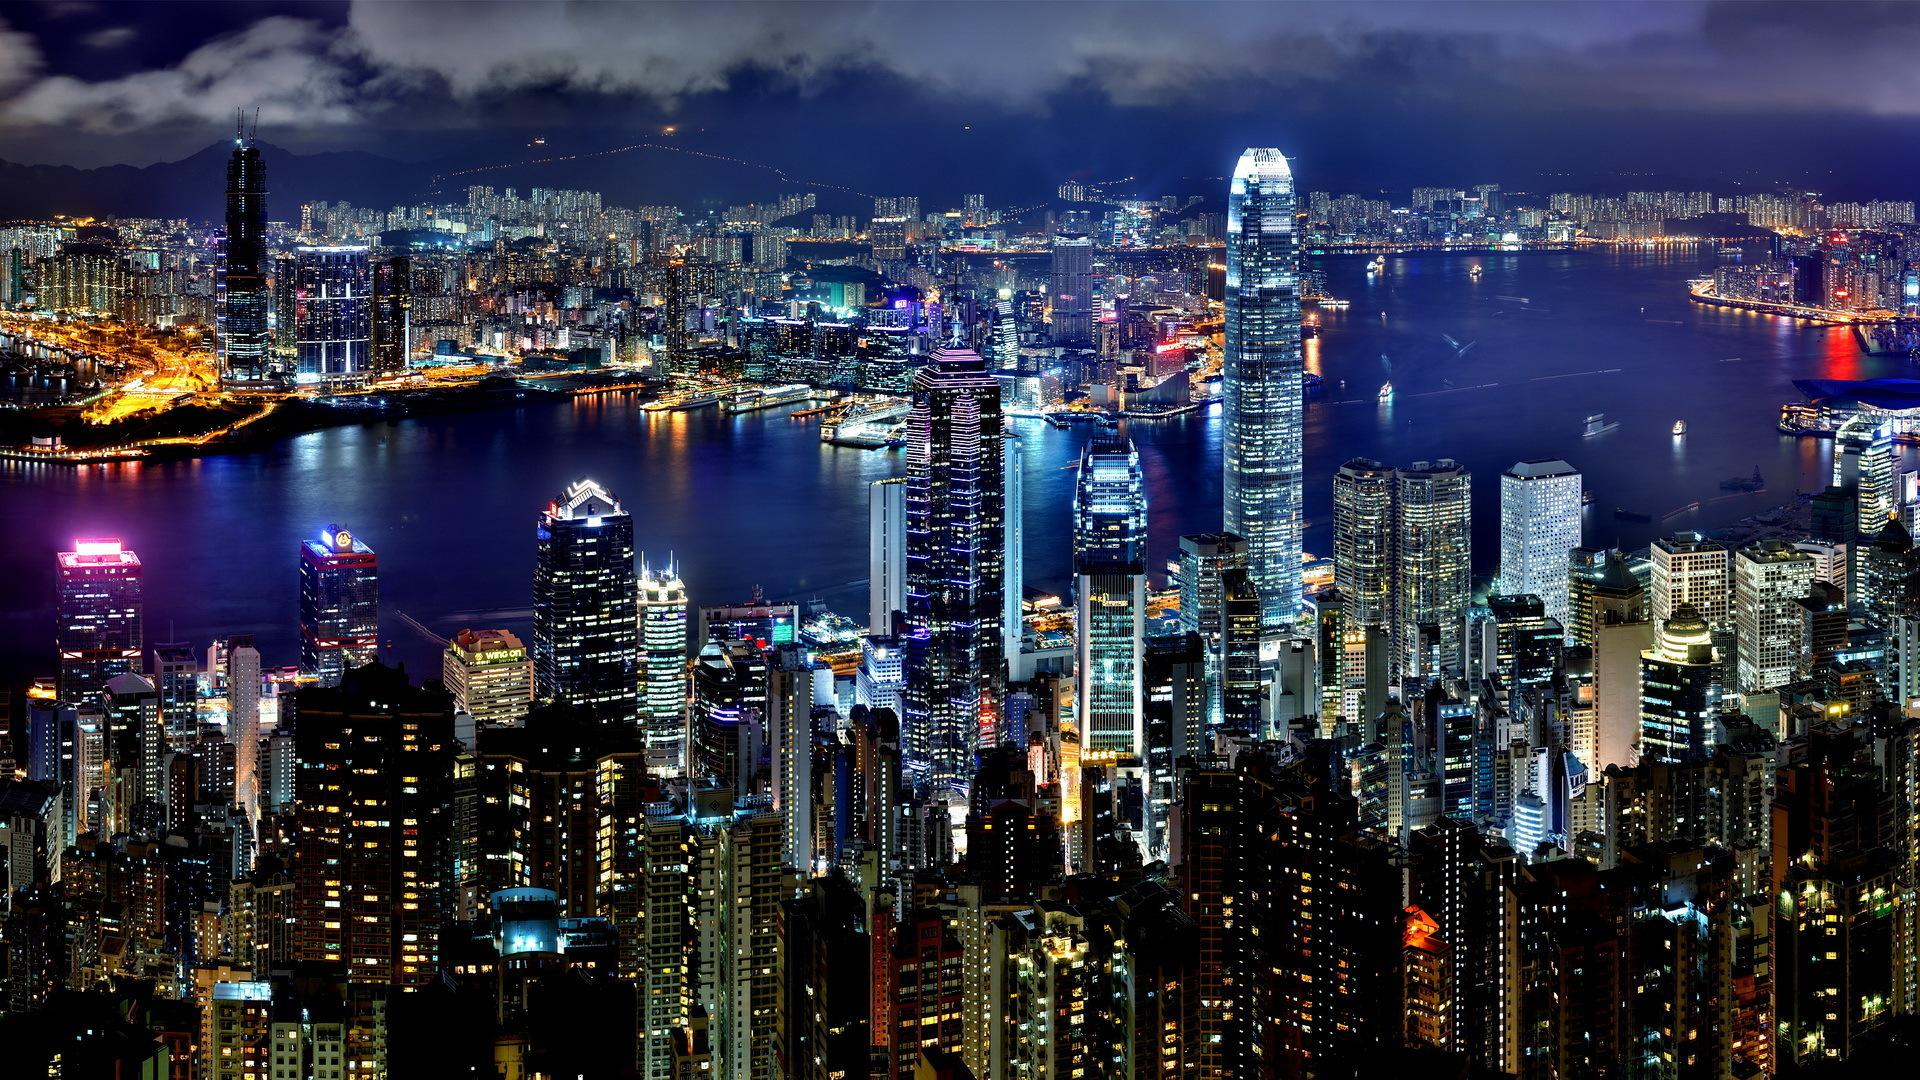 cityscapes night architecture buildings Hong Kong